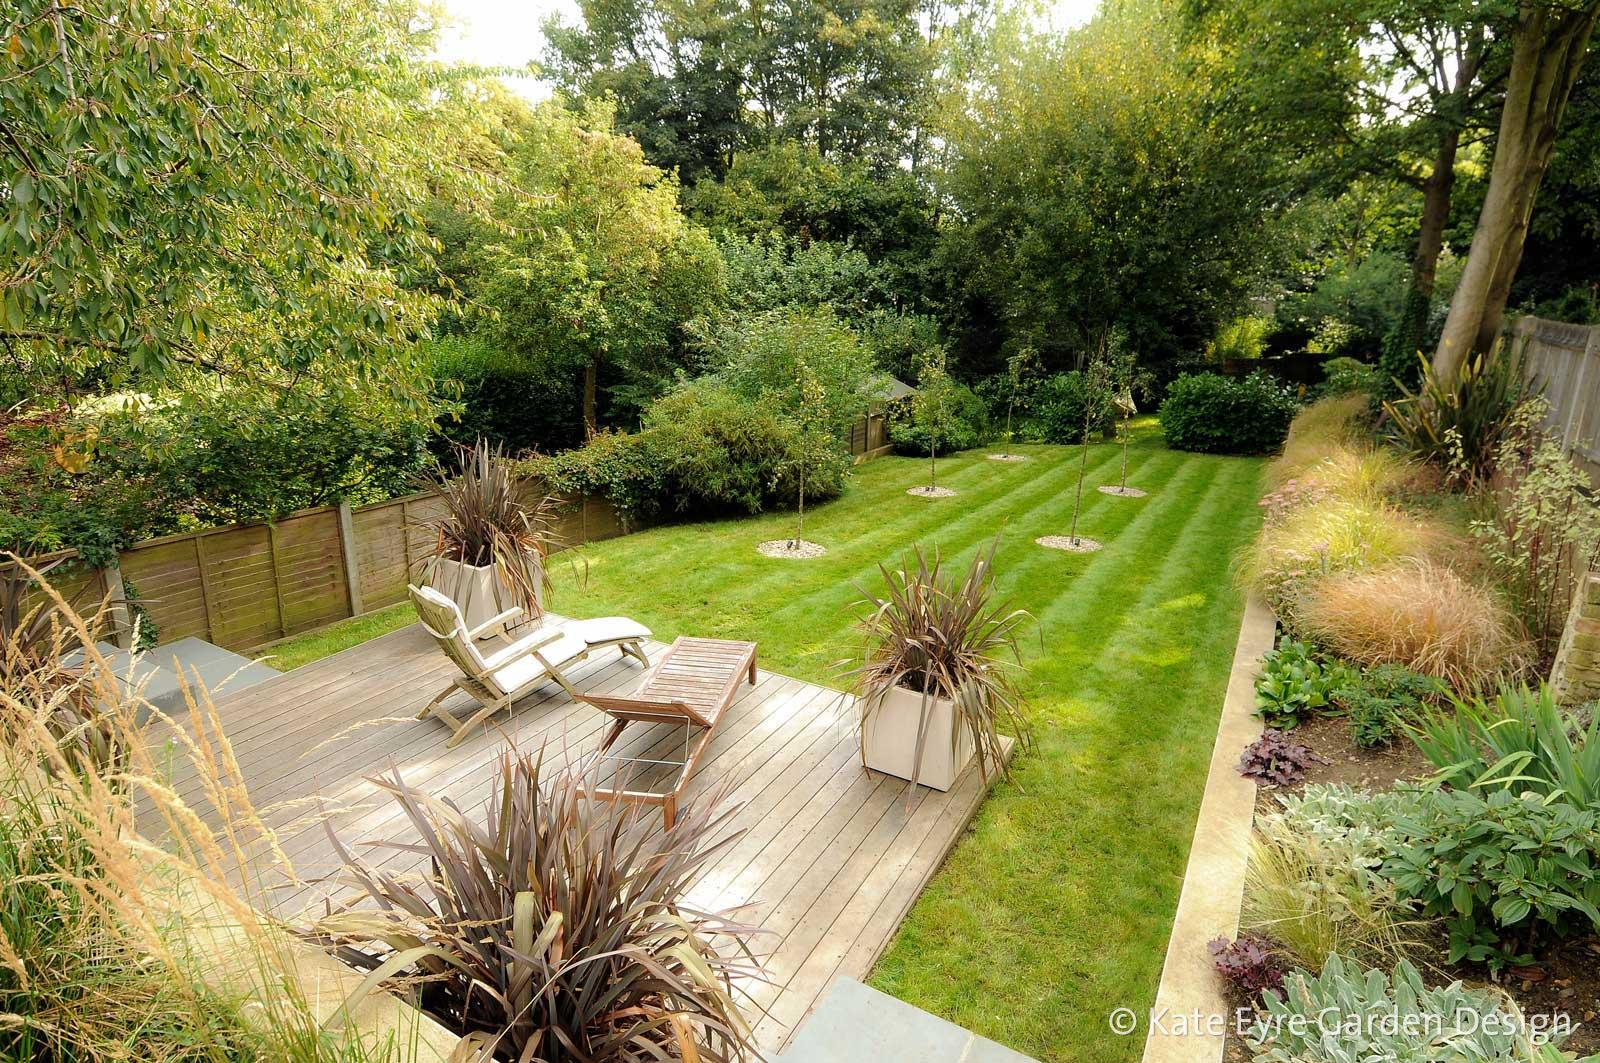 Garden design in crystal palace south east london Designer gardens